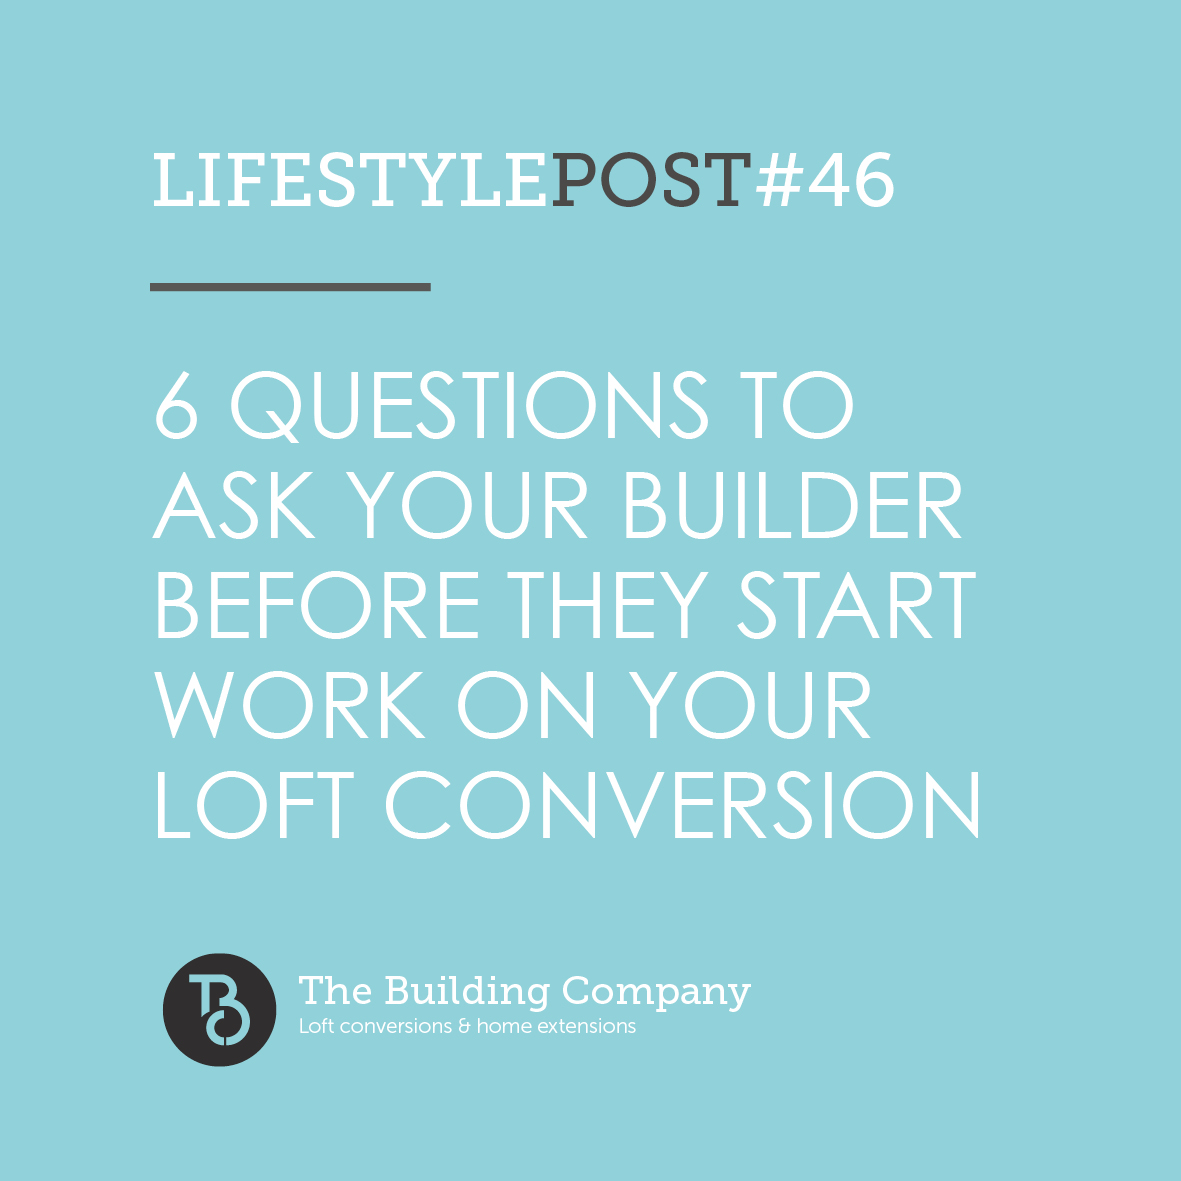 6 questions to ask a builder before they start work on your loft conversion in North London